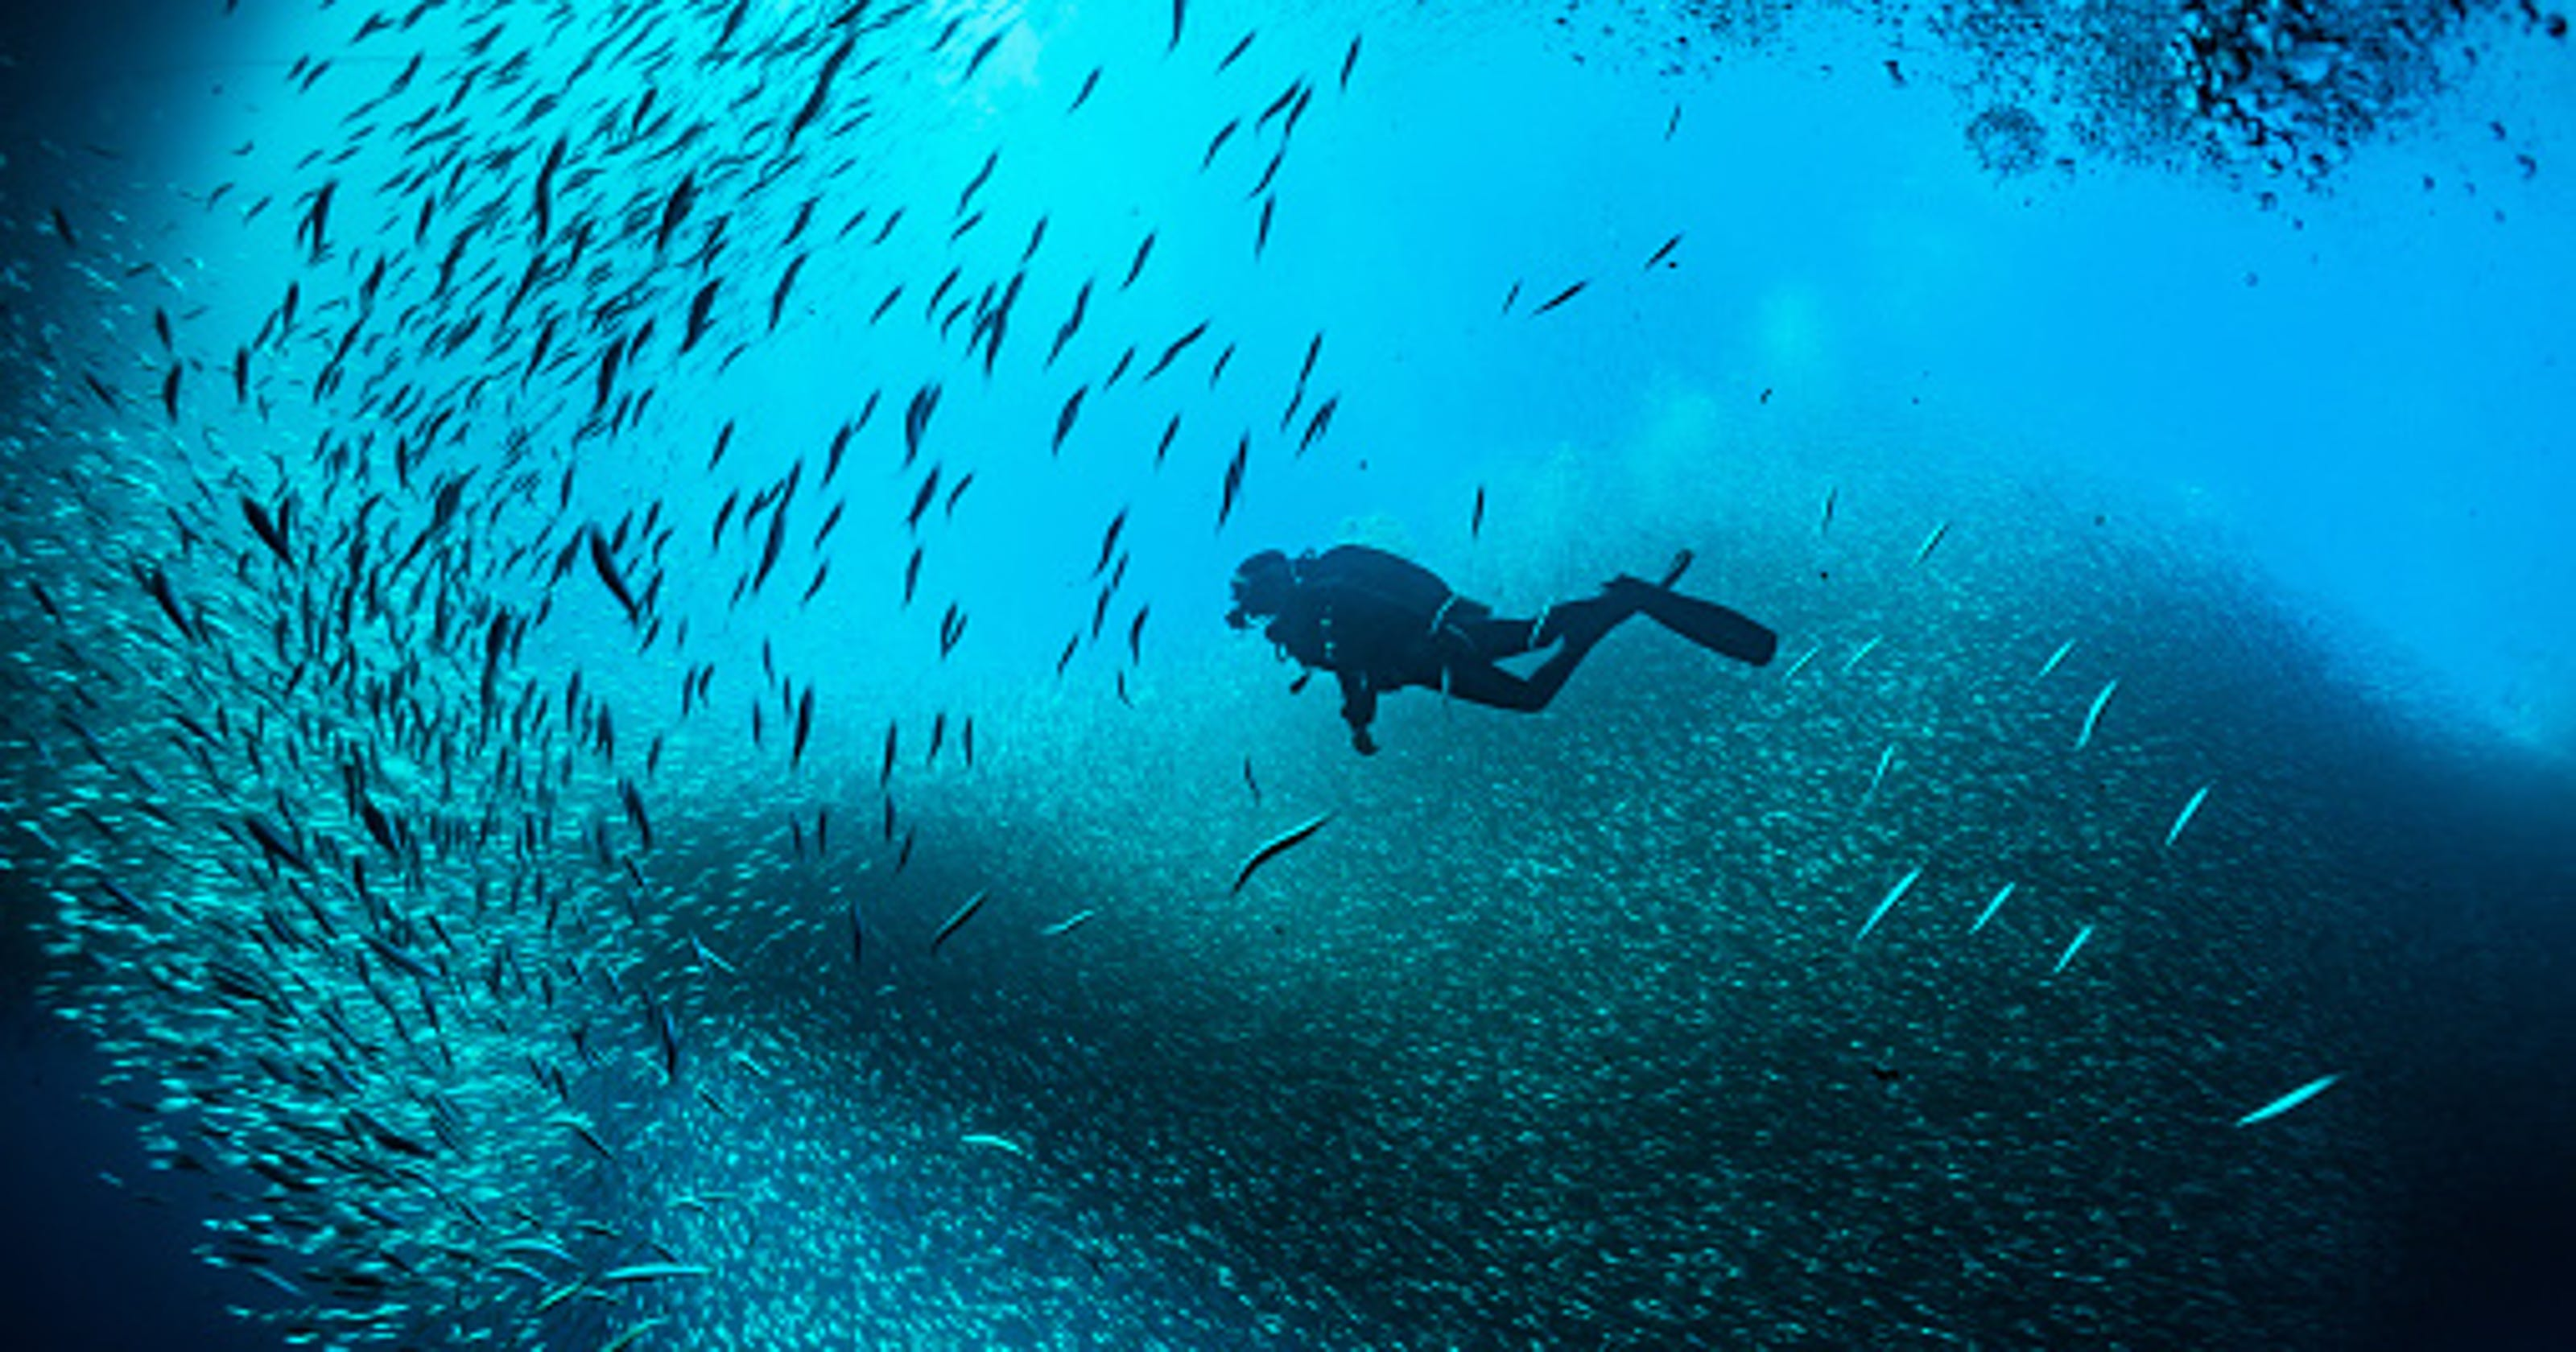 Dive in! Get started scuba diving, snorkeling in Pensacola